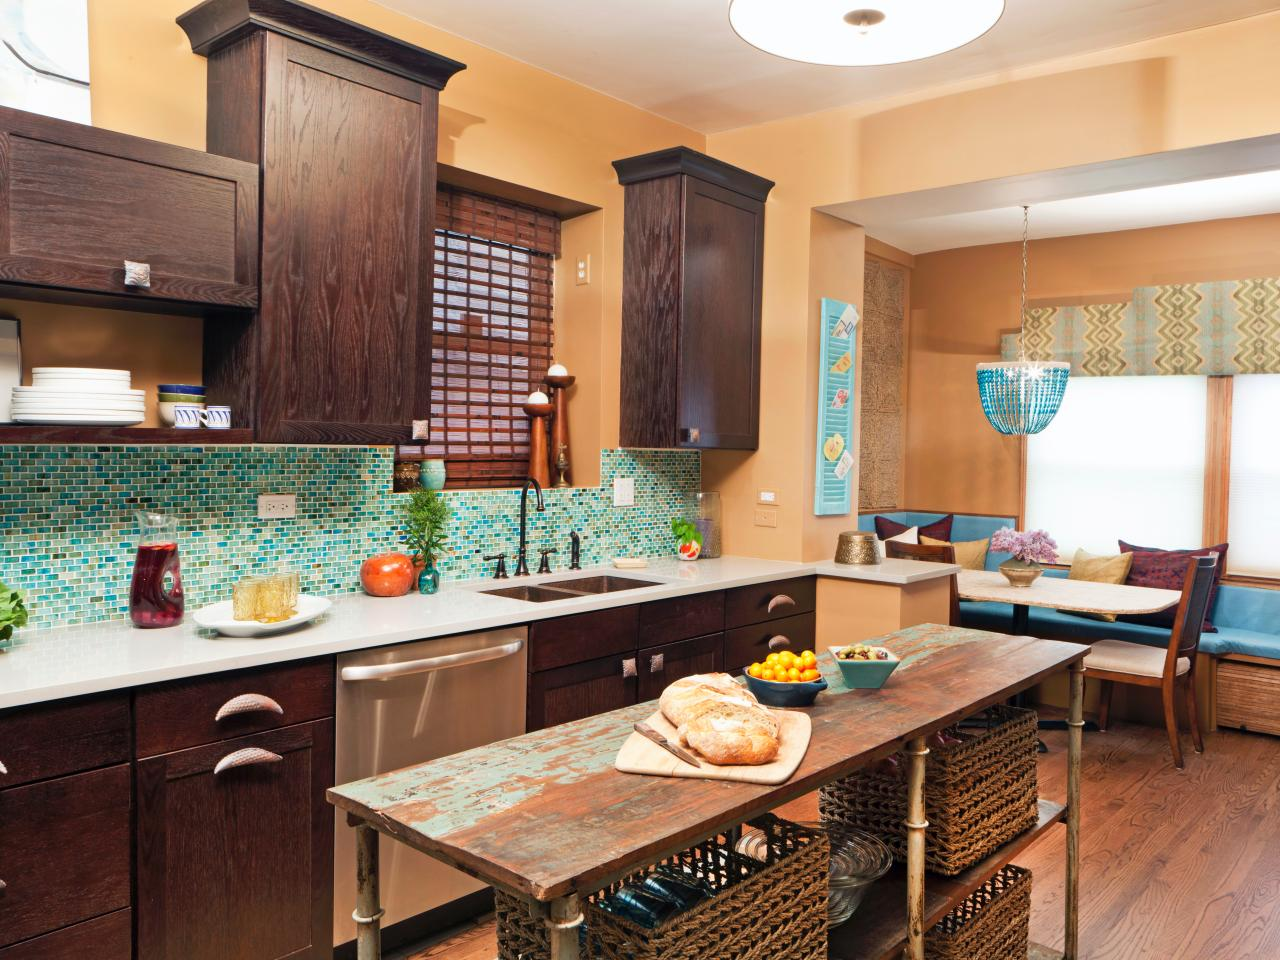 Top 15 Amazing DIY Home Improvements That Will Pay You Back   Mostly, Plus  ROI